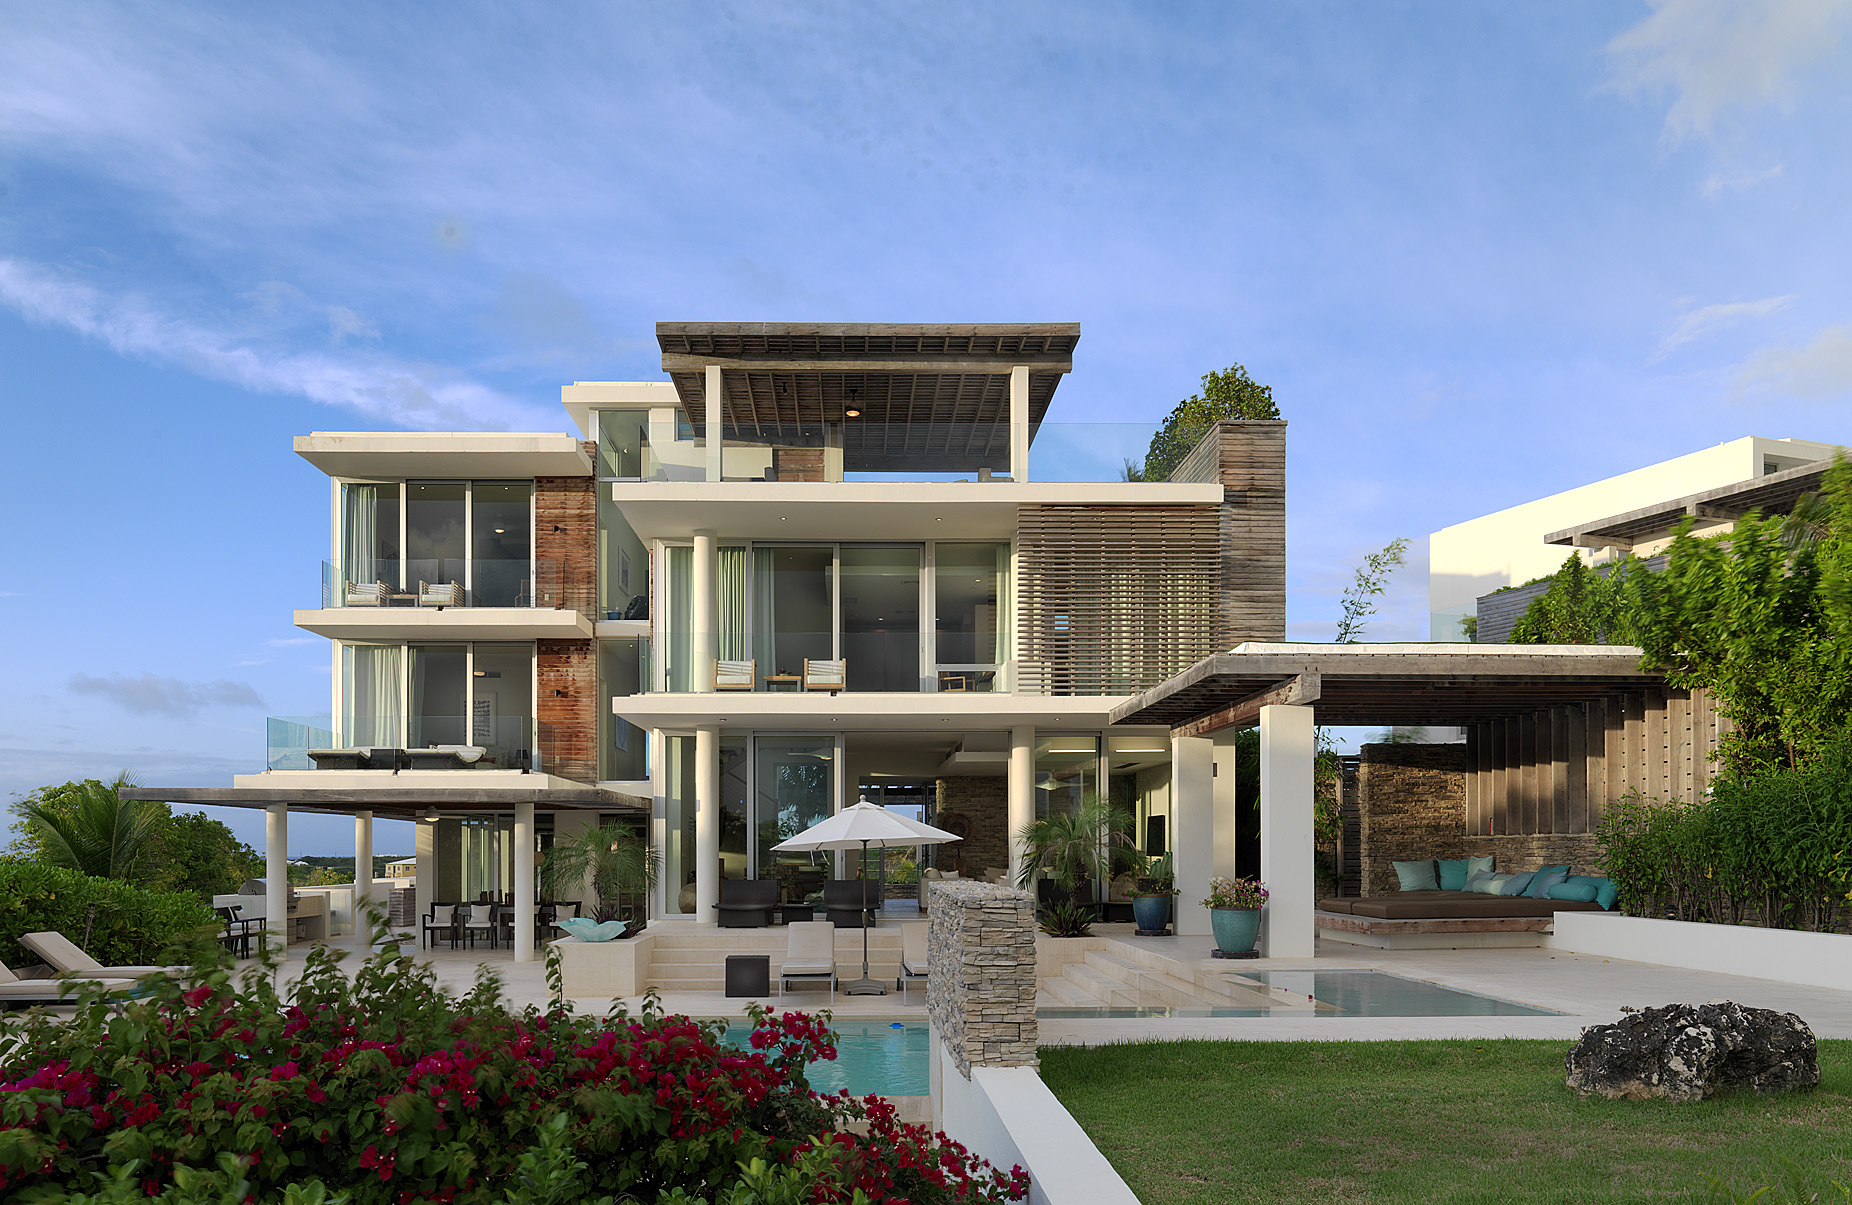 2 modern caribbean seaside house 1852 1205 for Caribbean house designs